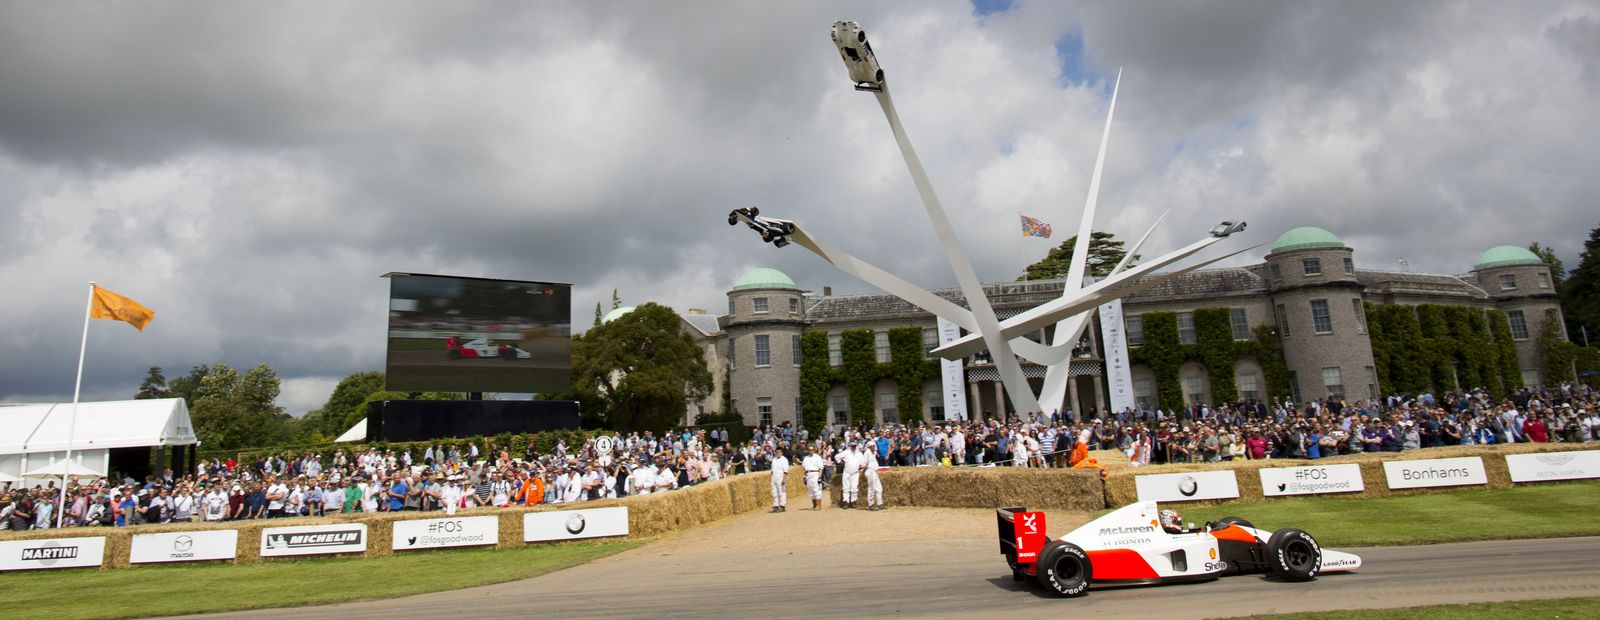 Festival Of Speed >> Mclaren Racing Goodwood Festival Of Speed 2017